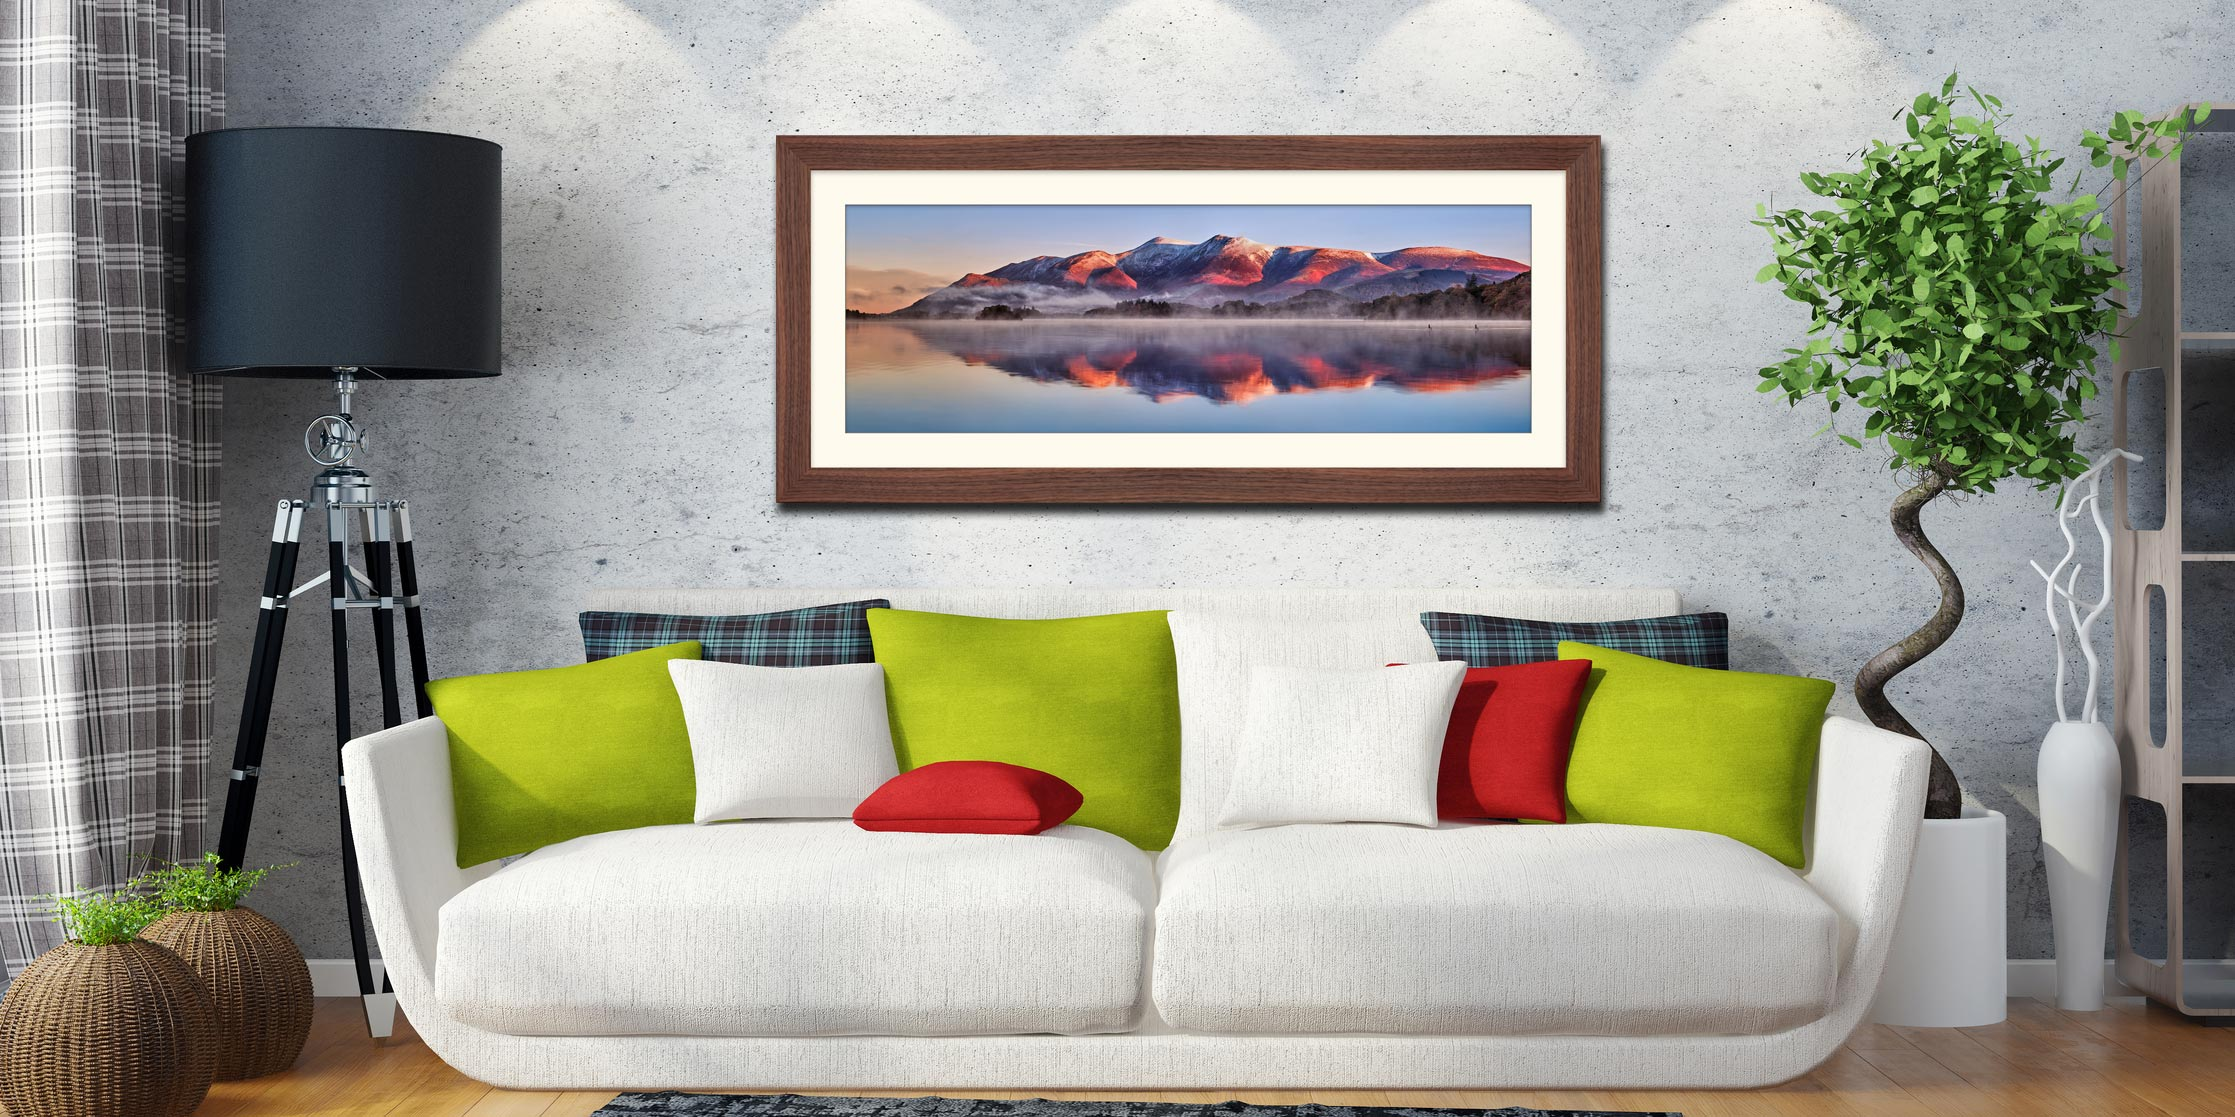 Skiddaw Reflection - Framed Print with Mount on Wall